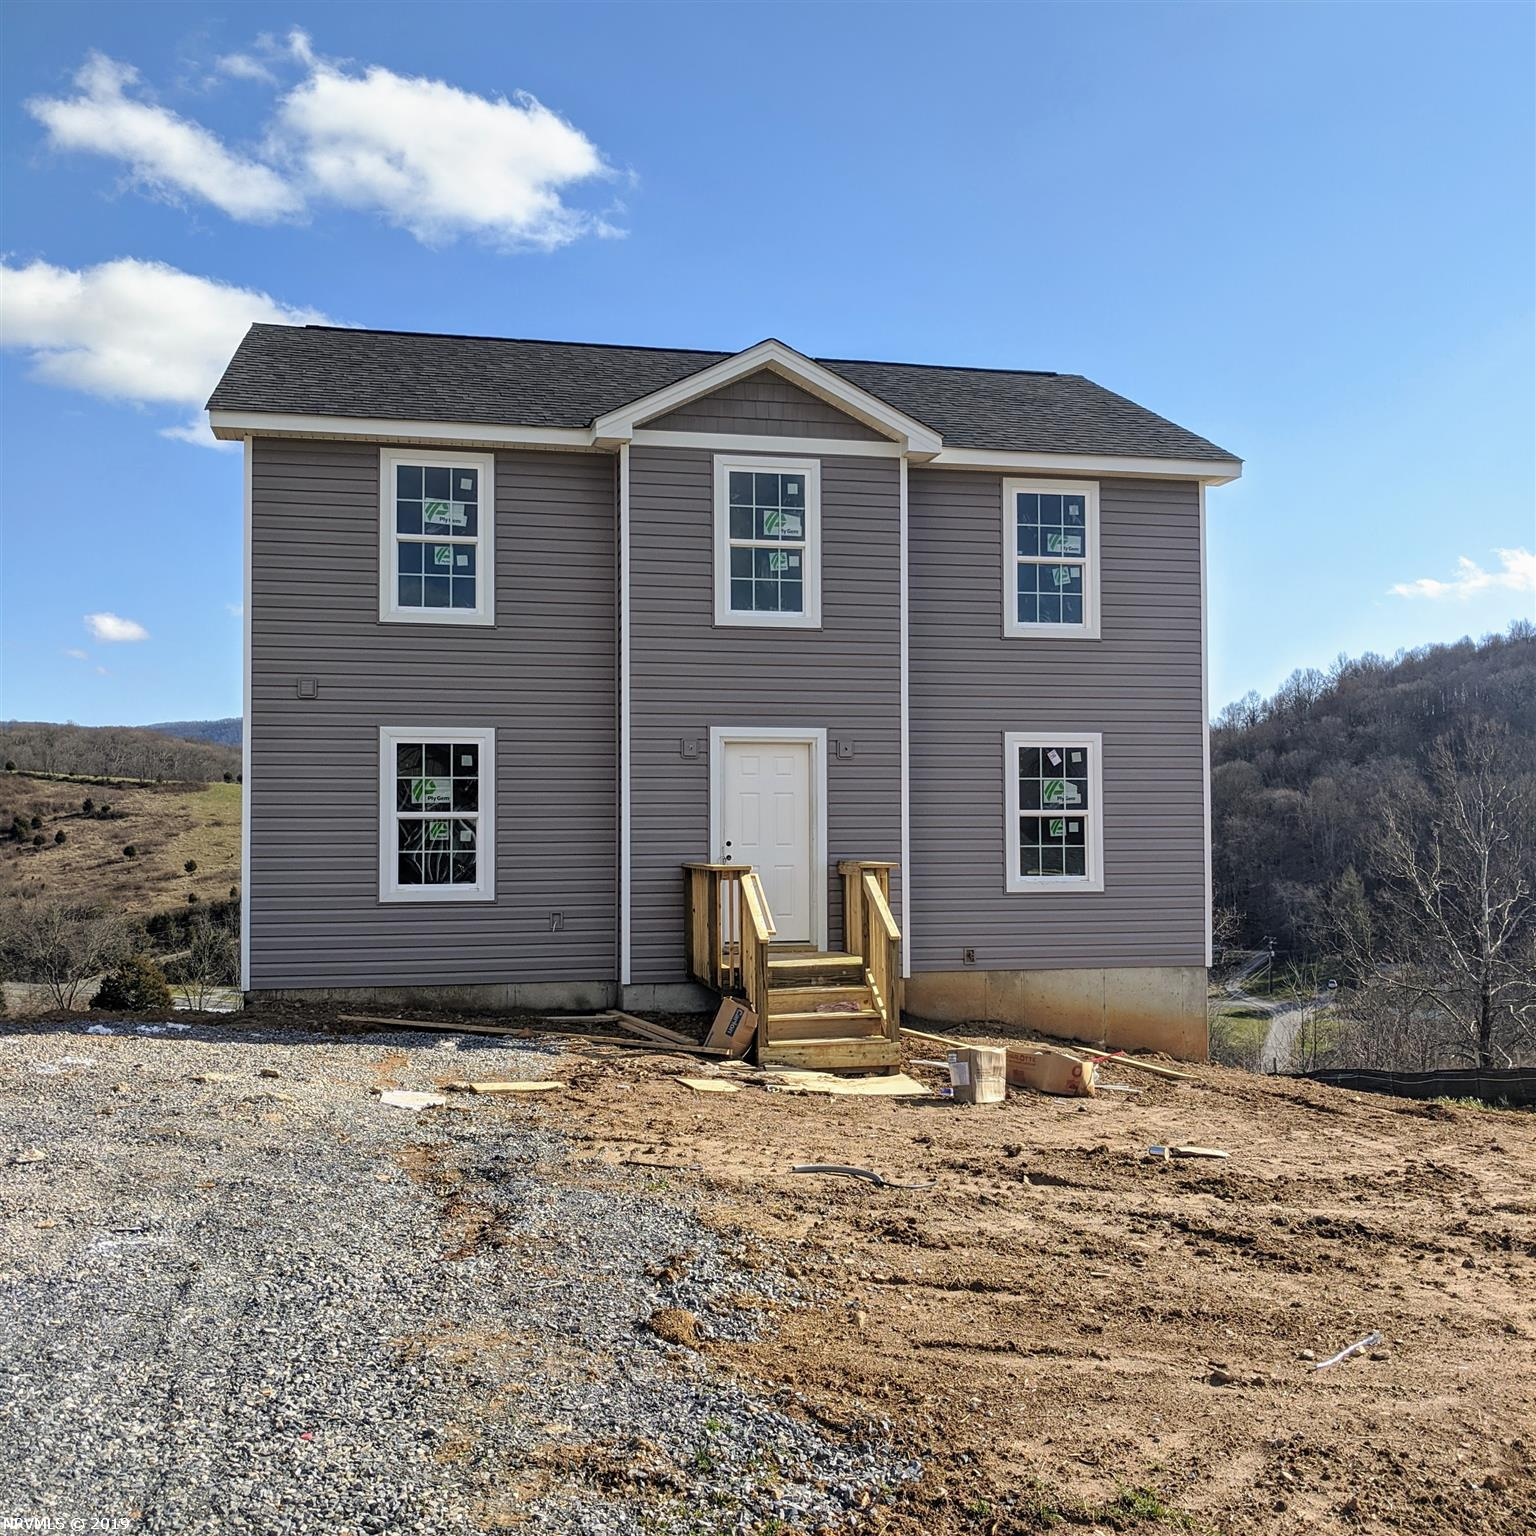 Come take a look at this brand new home with its amazing views This home sits in one of the newest up and coming communities  just minutes from downtown Blacksburg. With 3 bedroom 2.5 bath and a large unfinished basement you'll be sure to have plenty of room to grow. Why pay Blacksburg prices??   Only 15 minutes from VT campus.  The neighborhood offers a walking trail, picnic shelter, and pond. Yard care included.